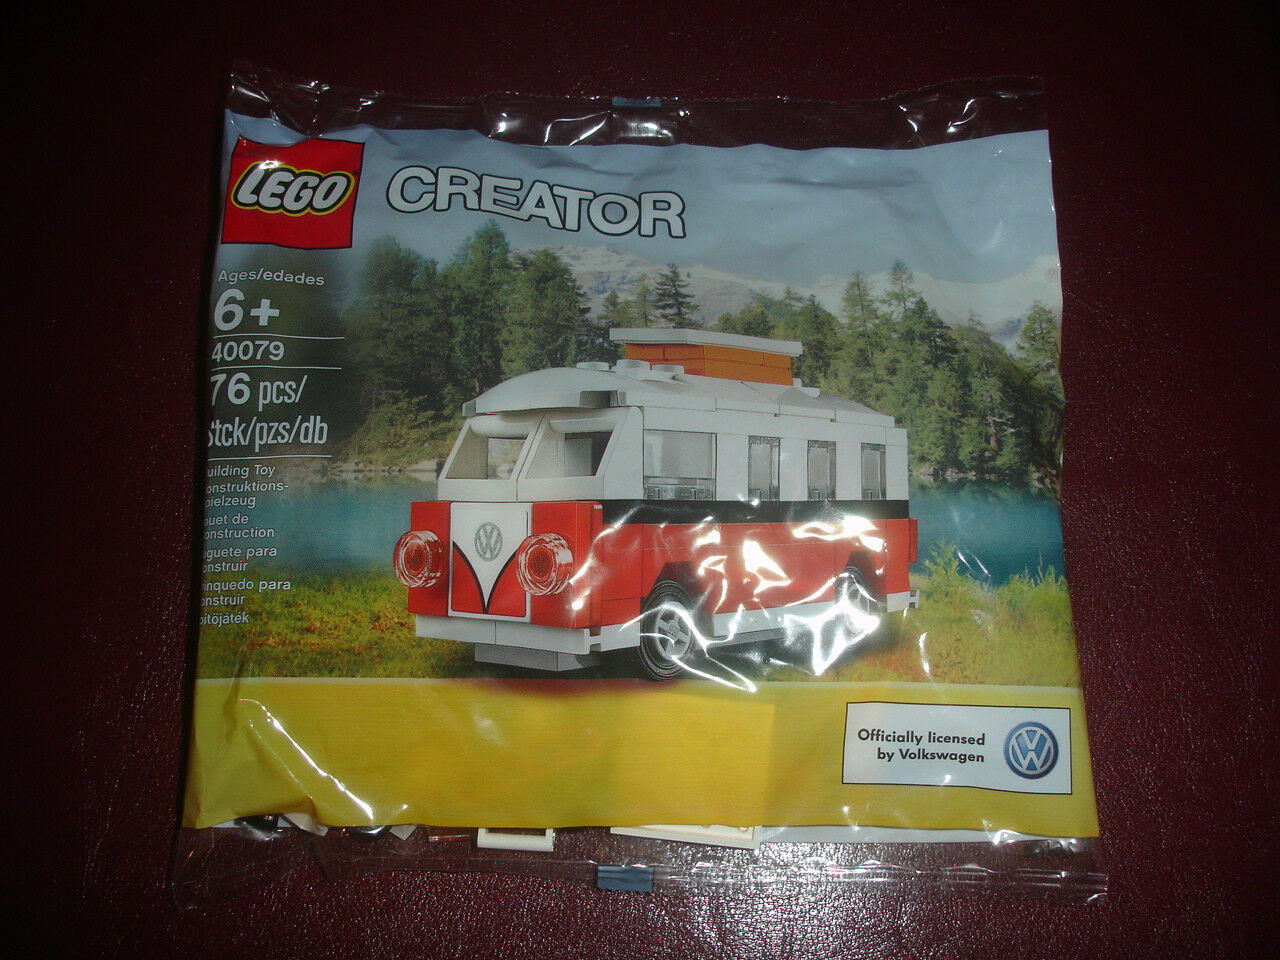 NEW LEGO CREATOR 40079 VW VOLKSWAGEN CAR CAMPER CAMPER CAMPER SET KIT SEALED IN BAG RARE 454801